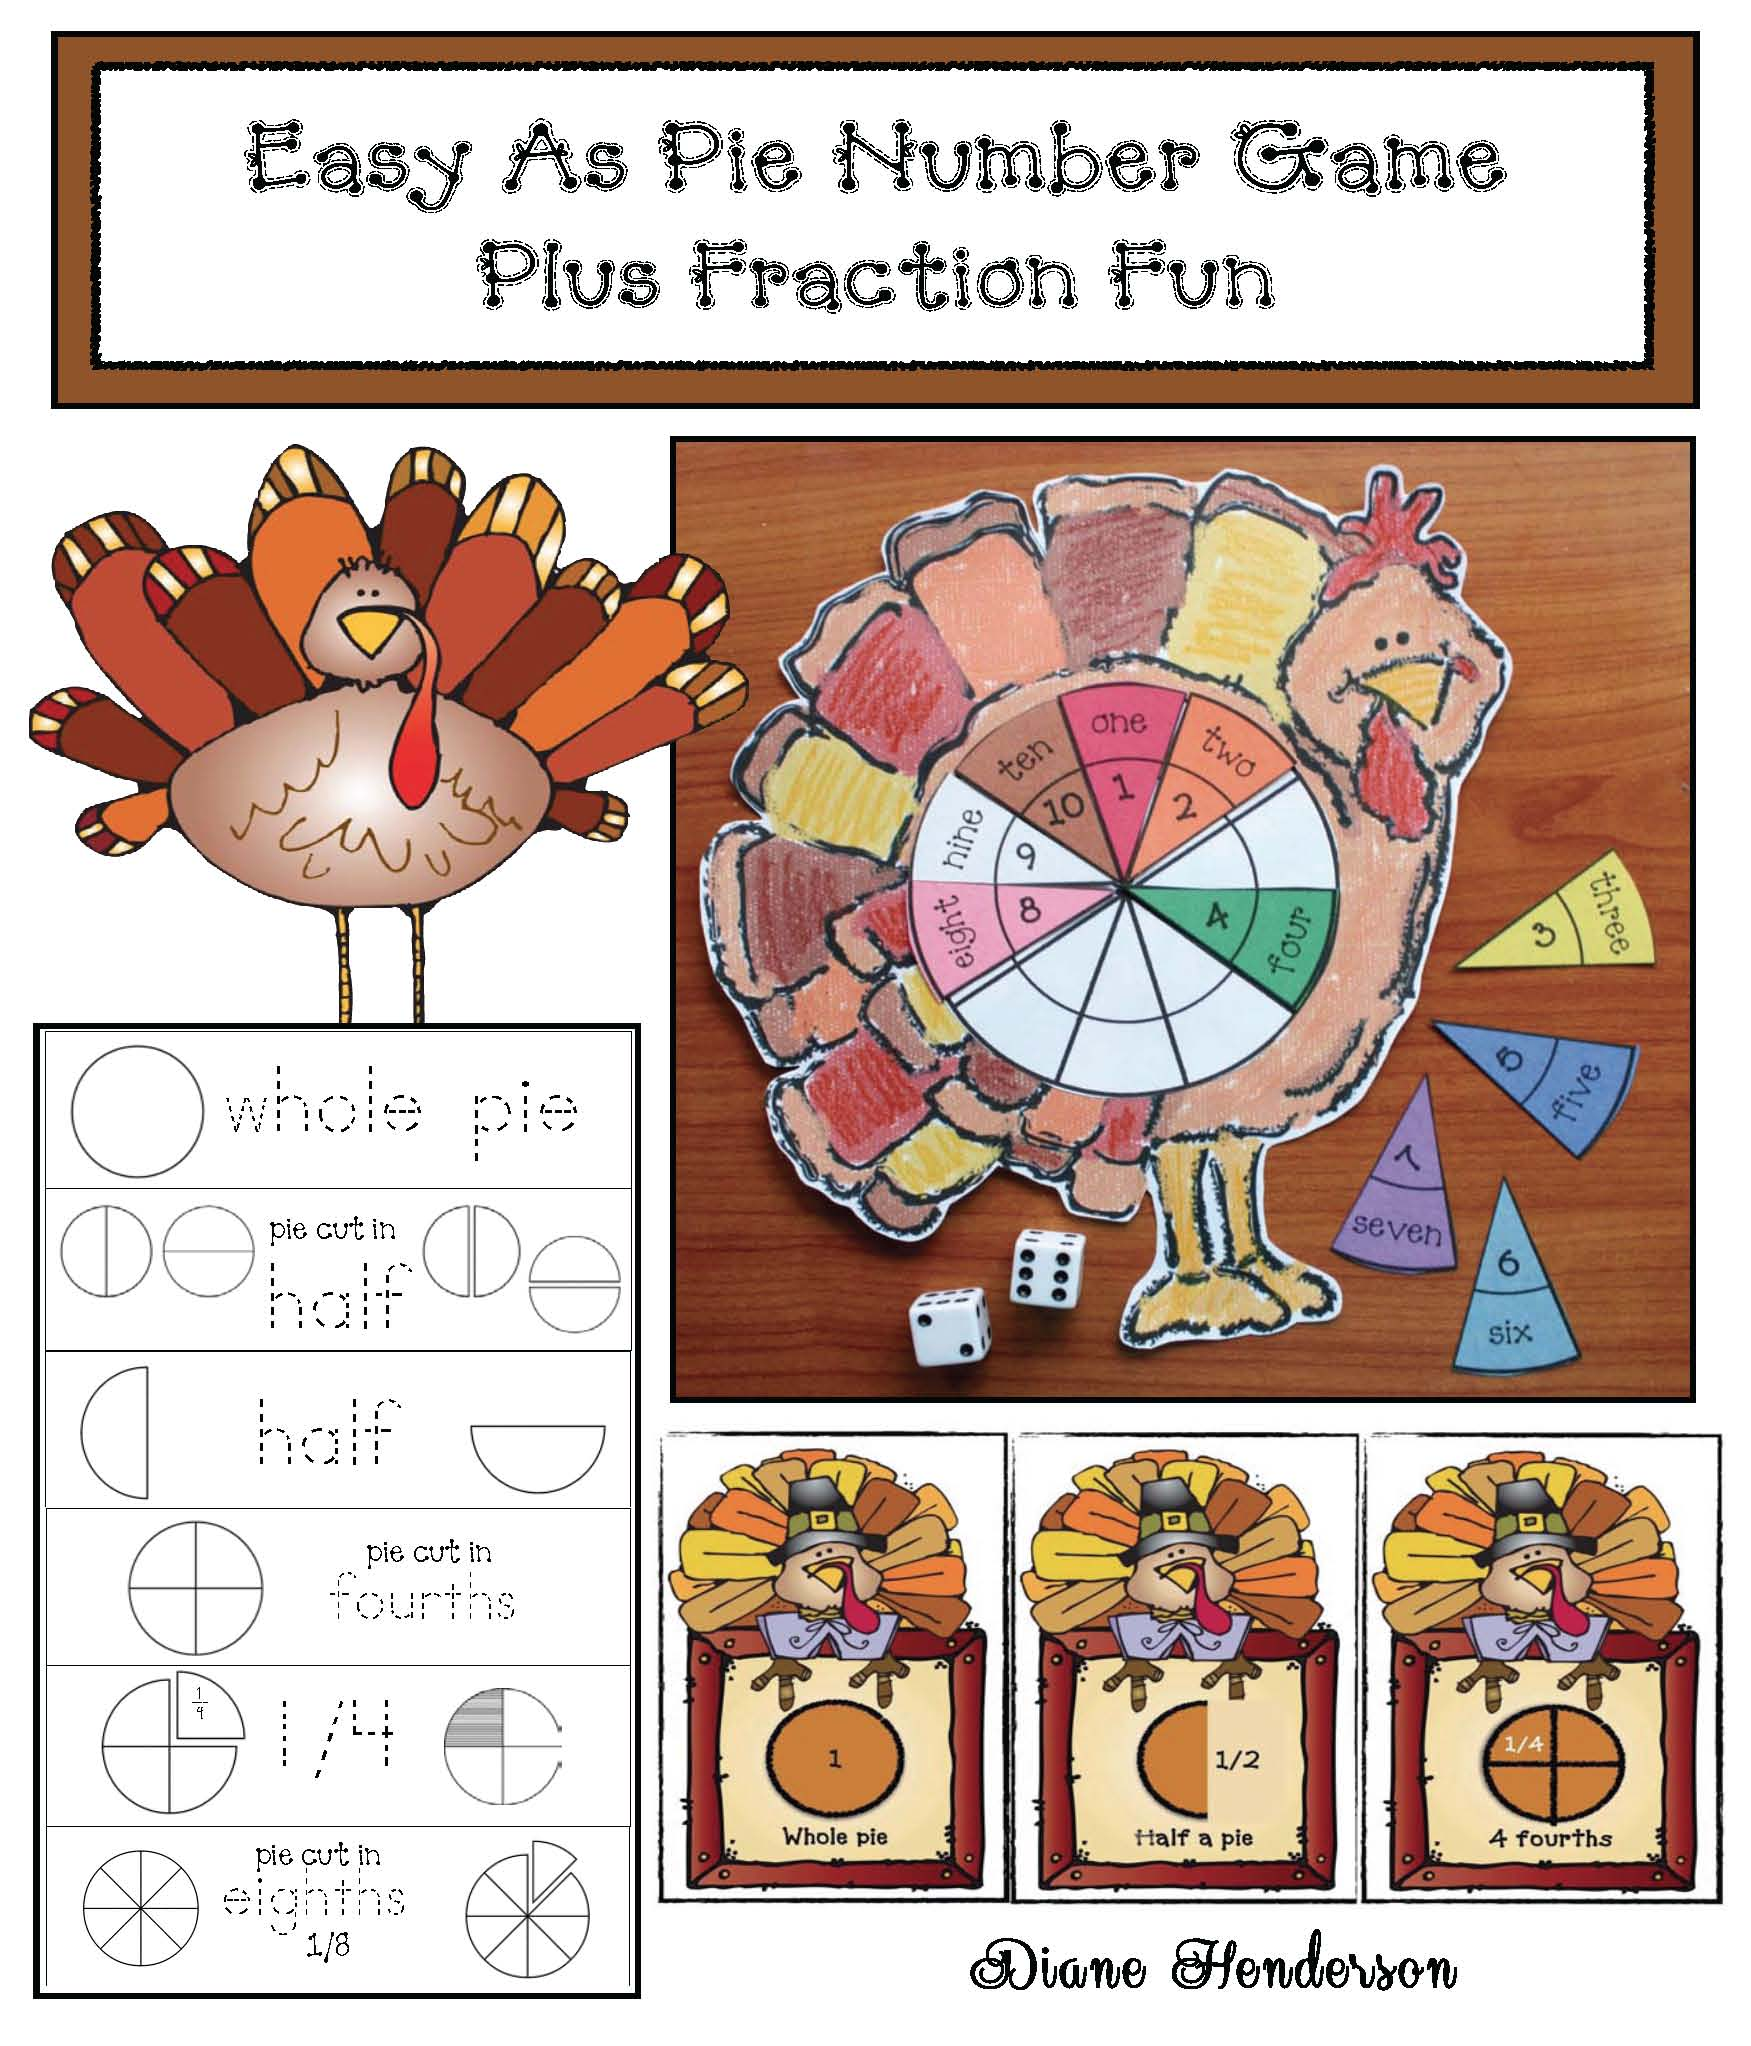 thanksgiving centers, math centers, thanksgiving activities, fraction activities, thanksgiving crafts, turkey crafts, thanksgiving games